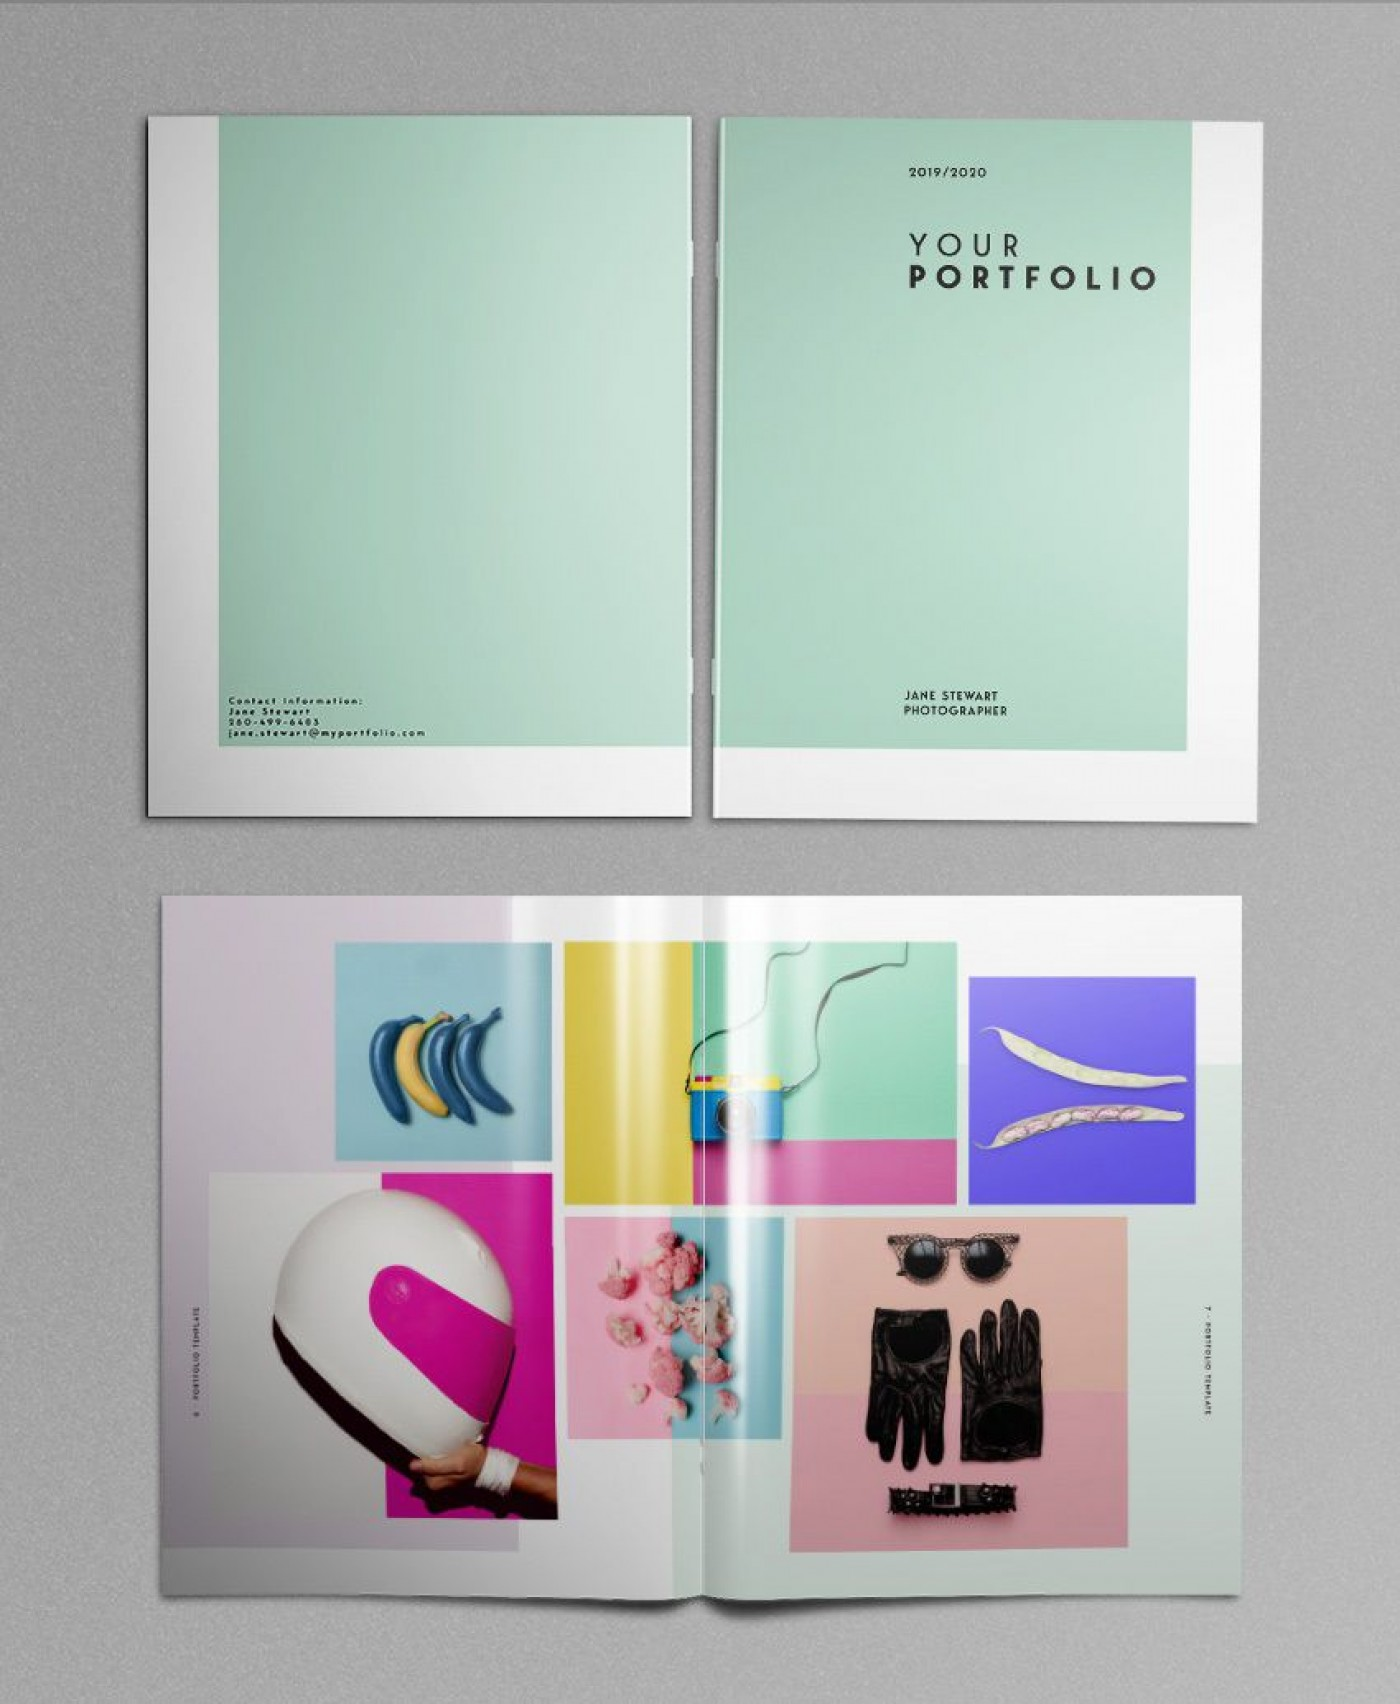 000 Singular In Design Portfolio Template High Resolution  Free Indesign A3 Photography Graphic Download1400